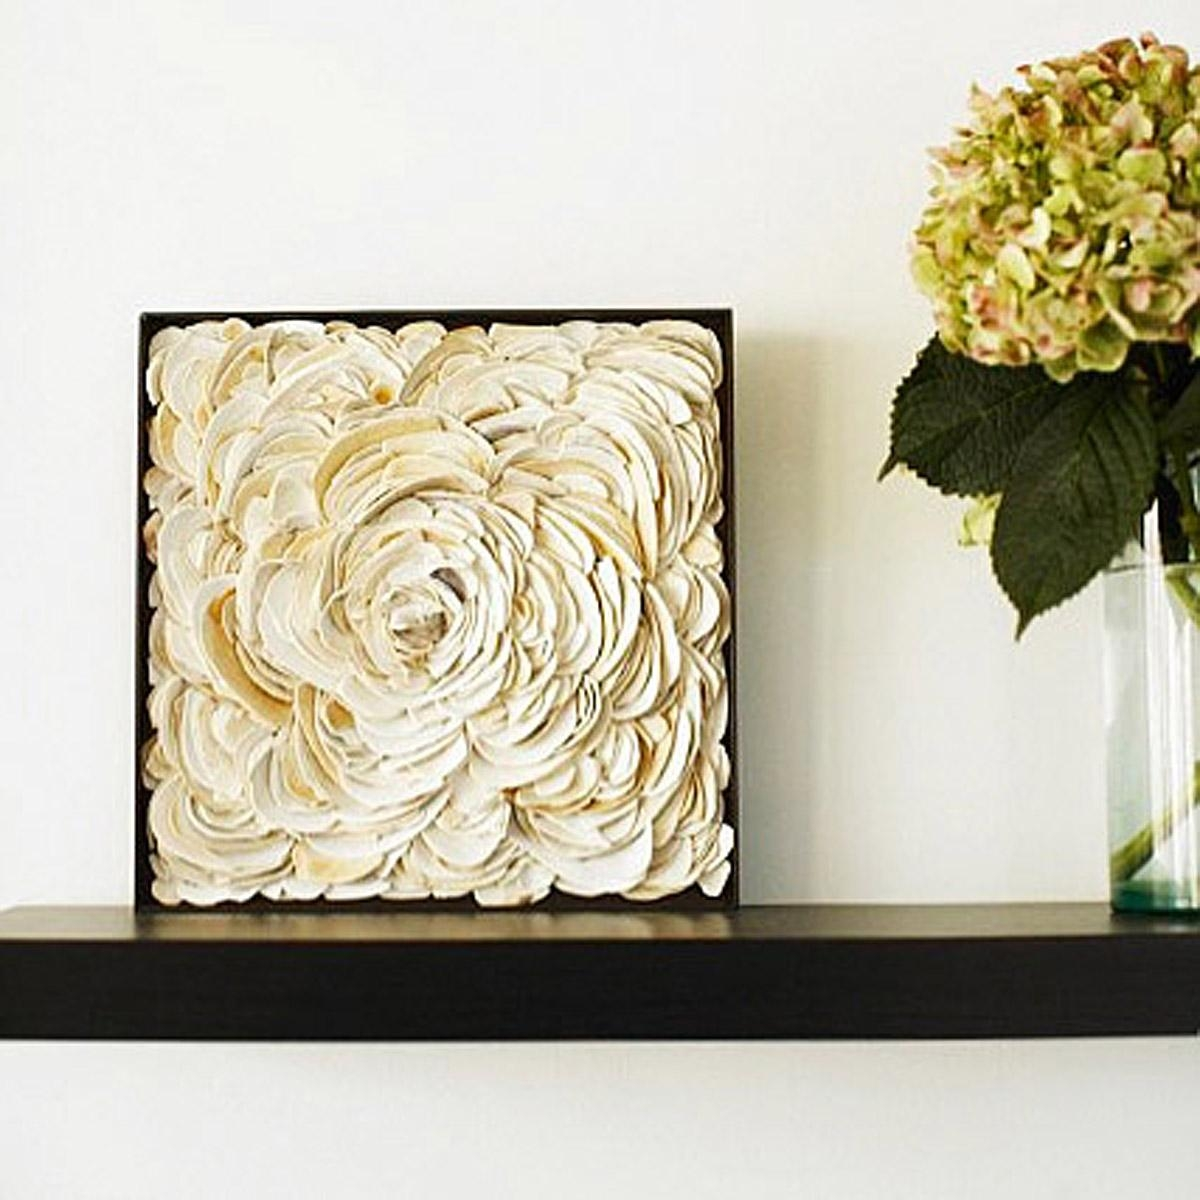 Infinite Seashell Wall Sculpture | Hamptons Beach Art | Uncommongoods Intended For Wall Art With Seashells (Image 13 of 20)